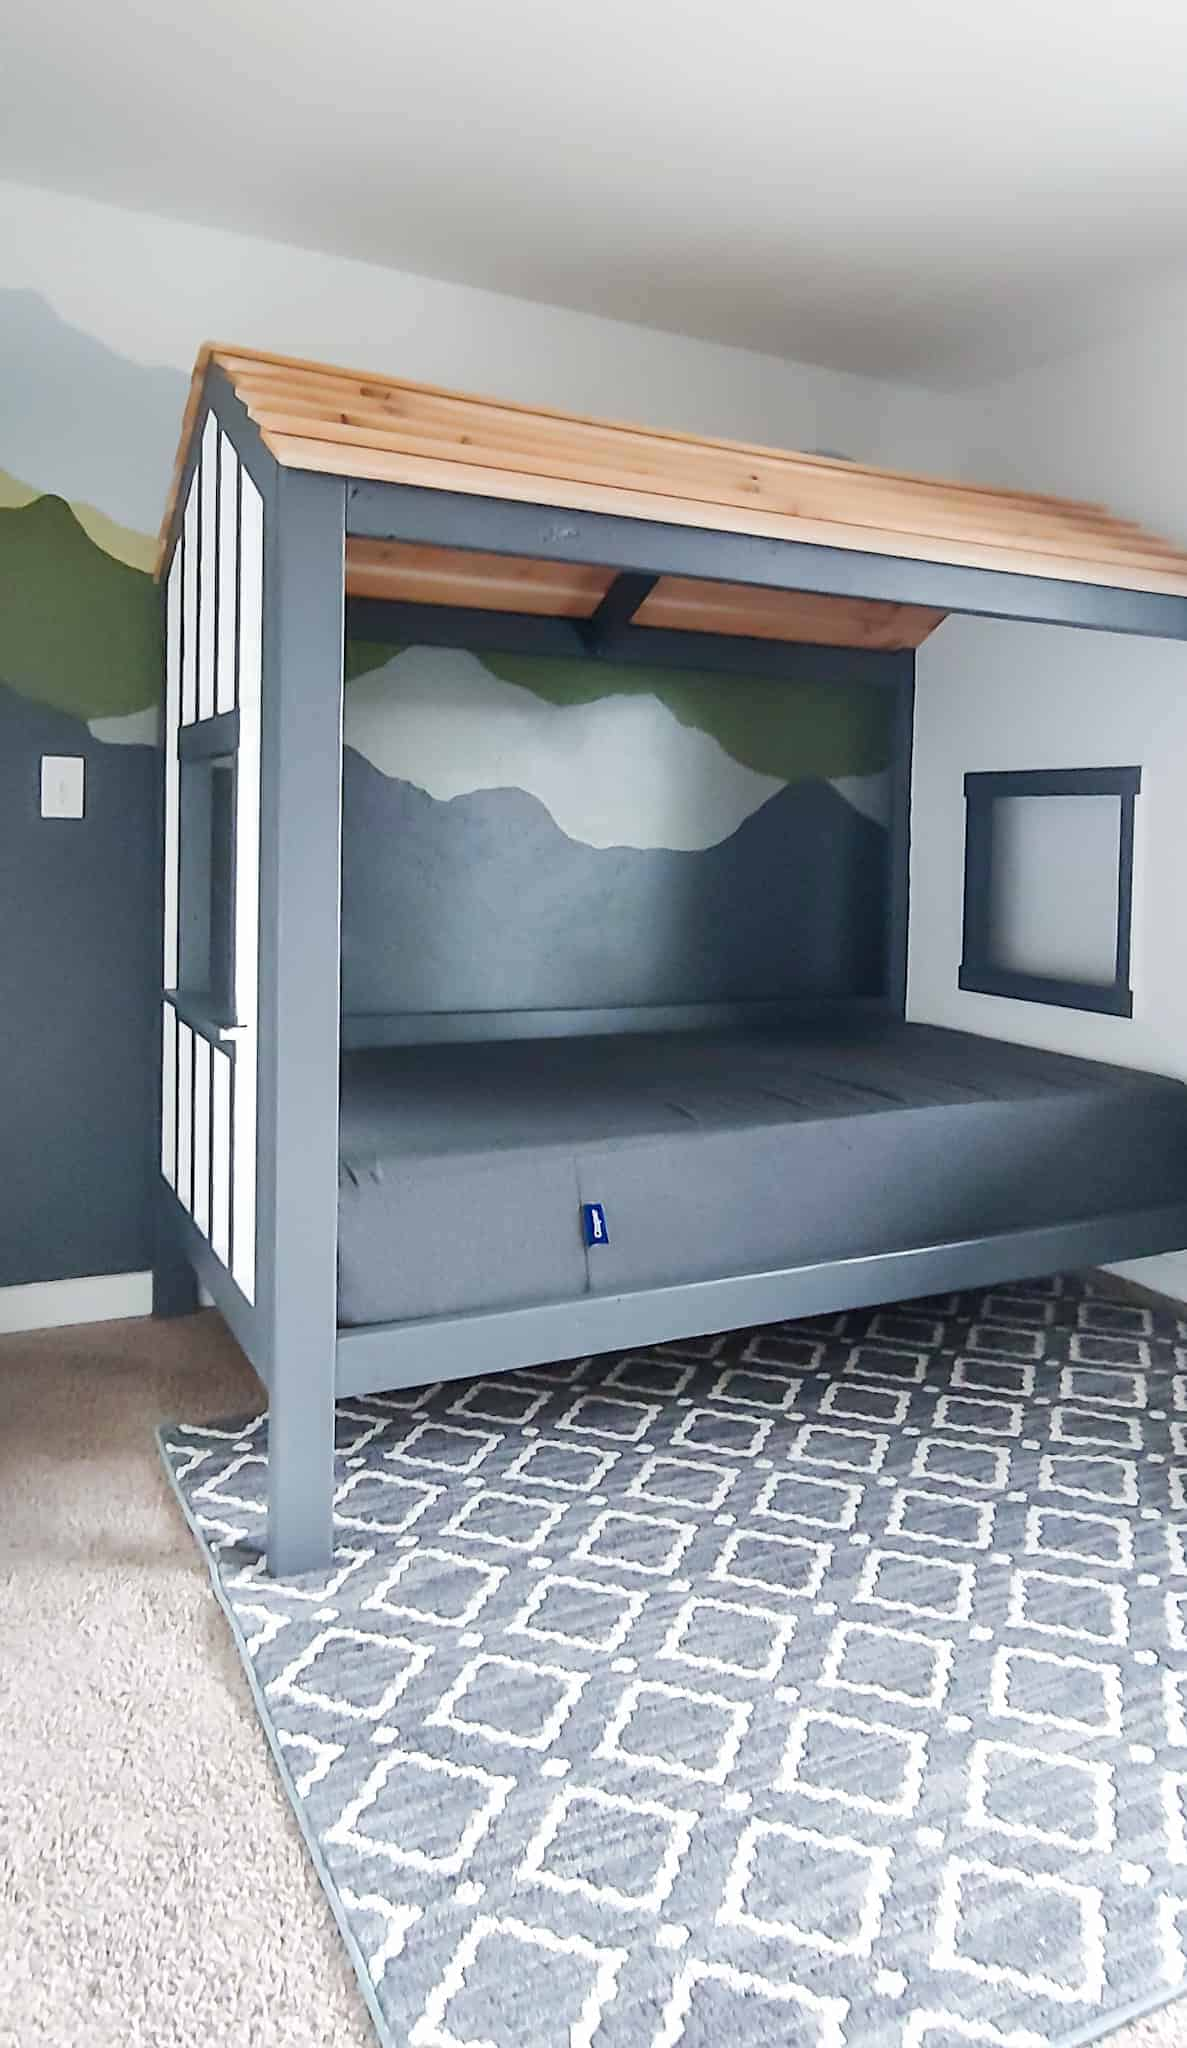 This DIY kids cabin bed is perfect for a camping themed room for your kiddo's first big kid bed.